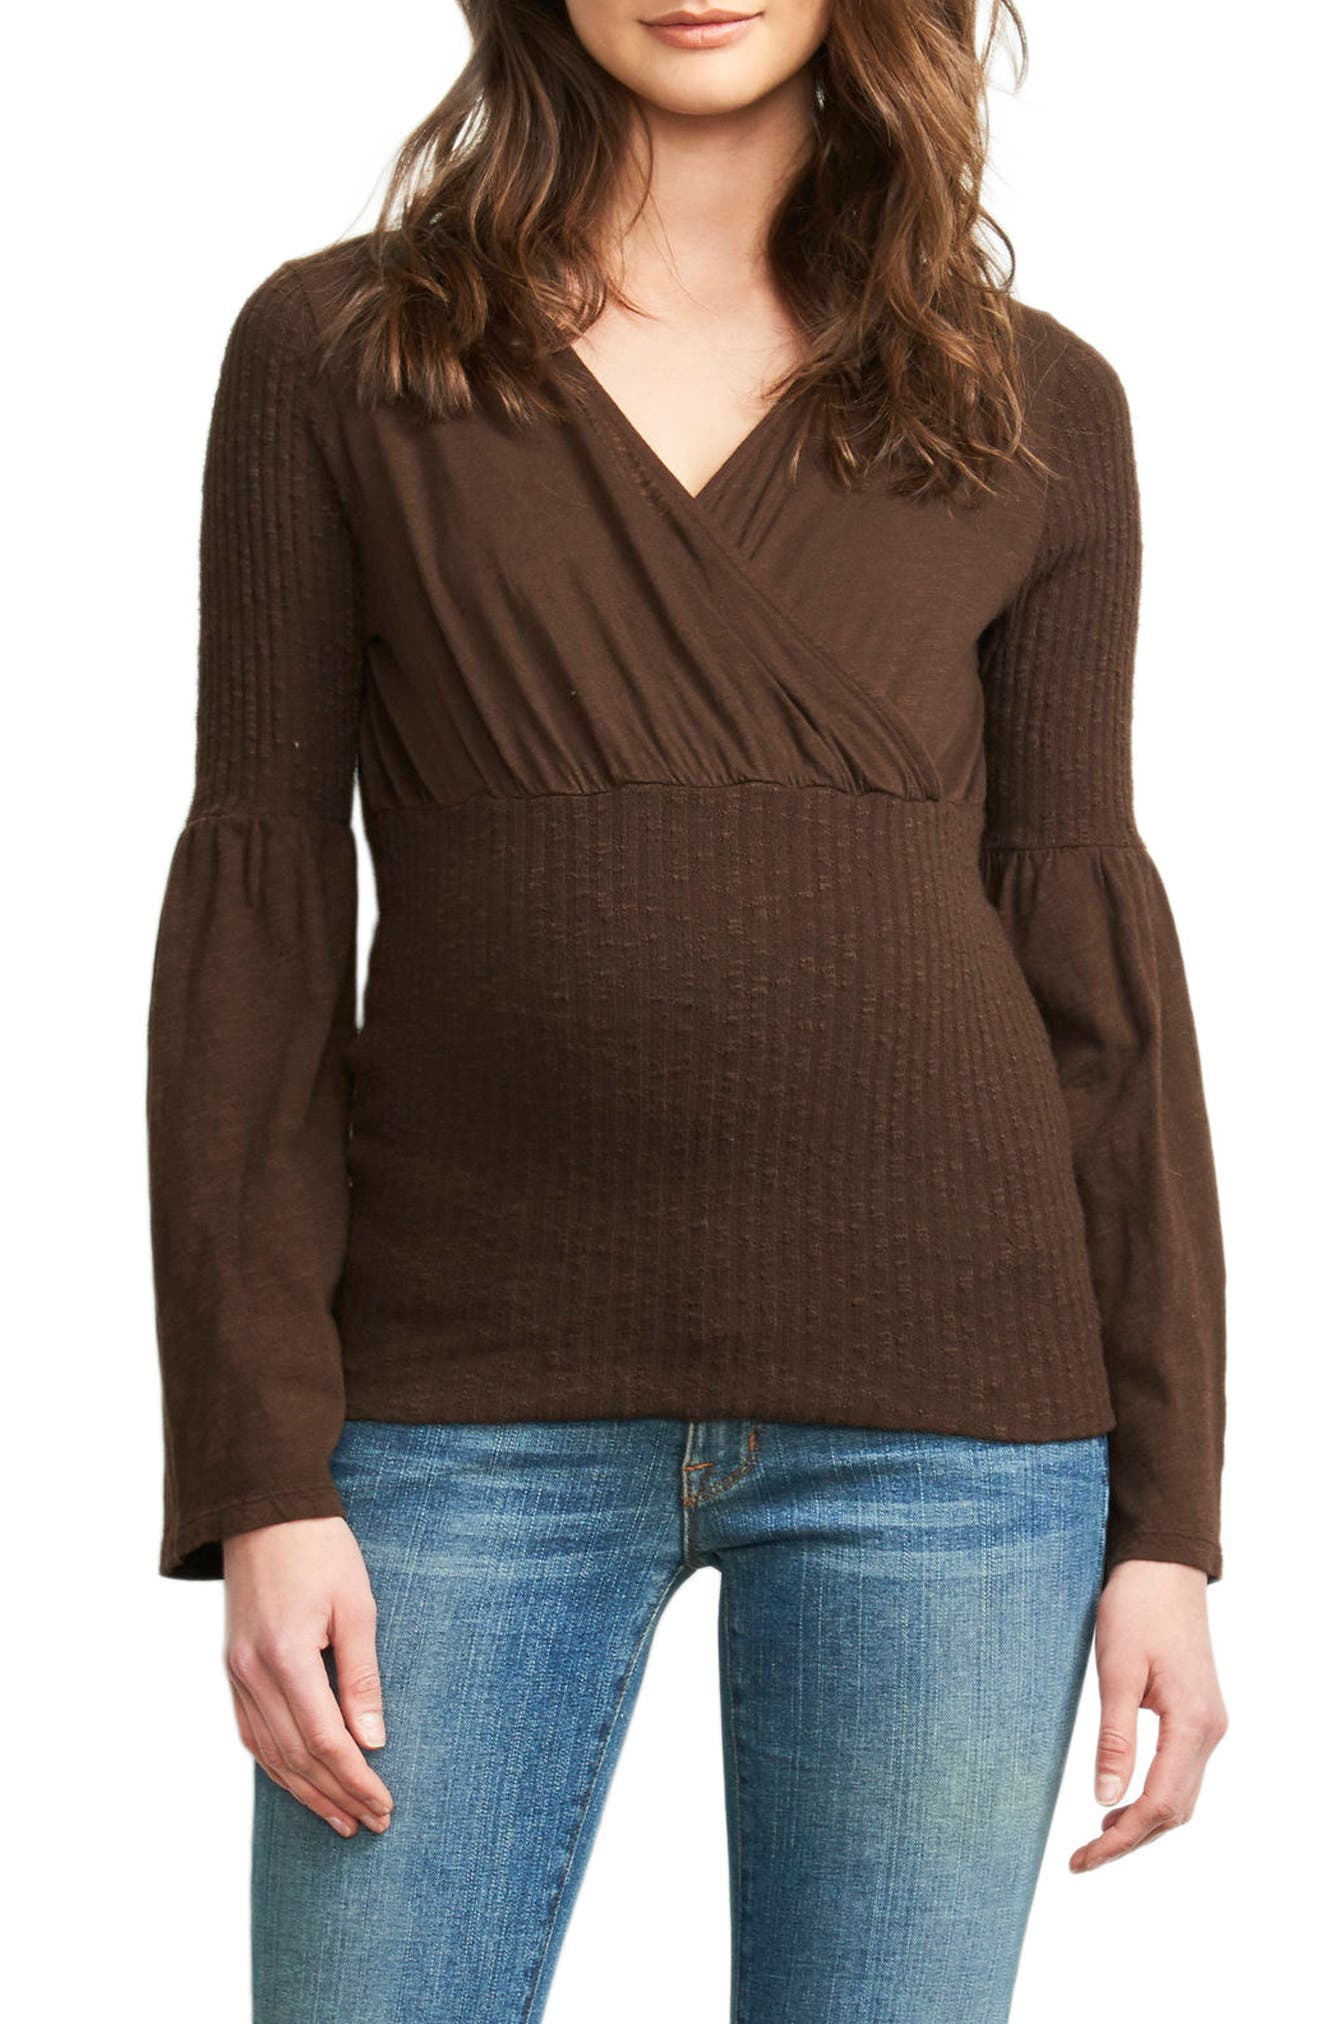 Maternal American Belly Hug Knit Maternity Top